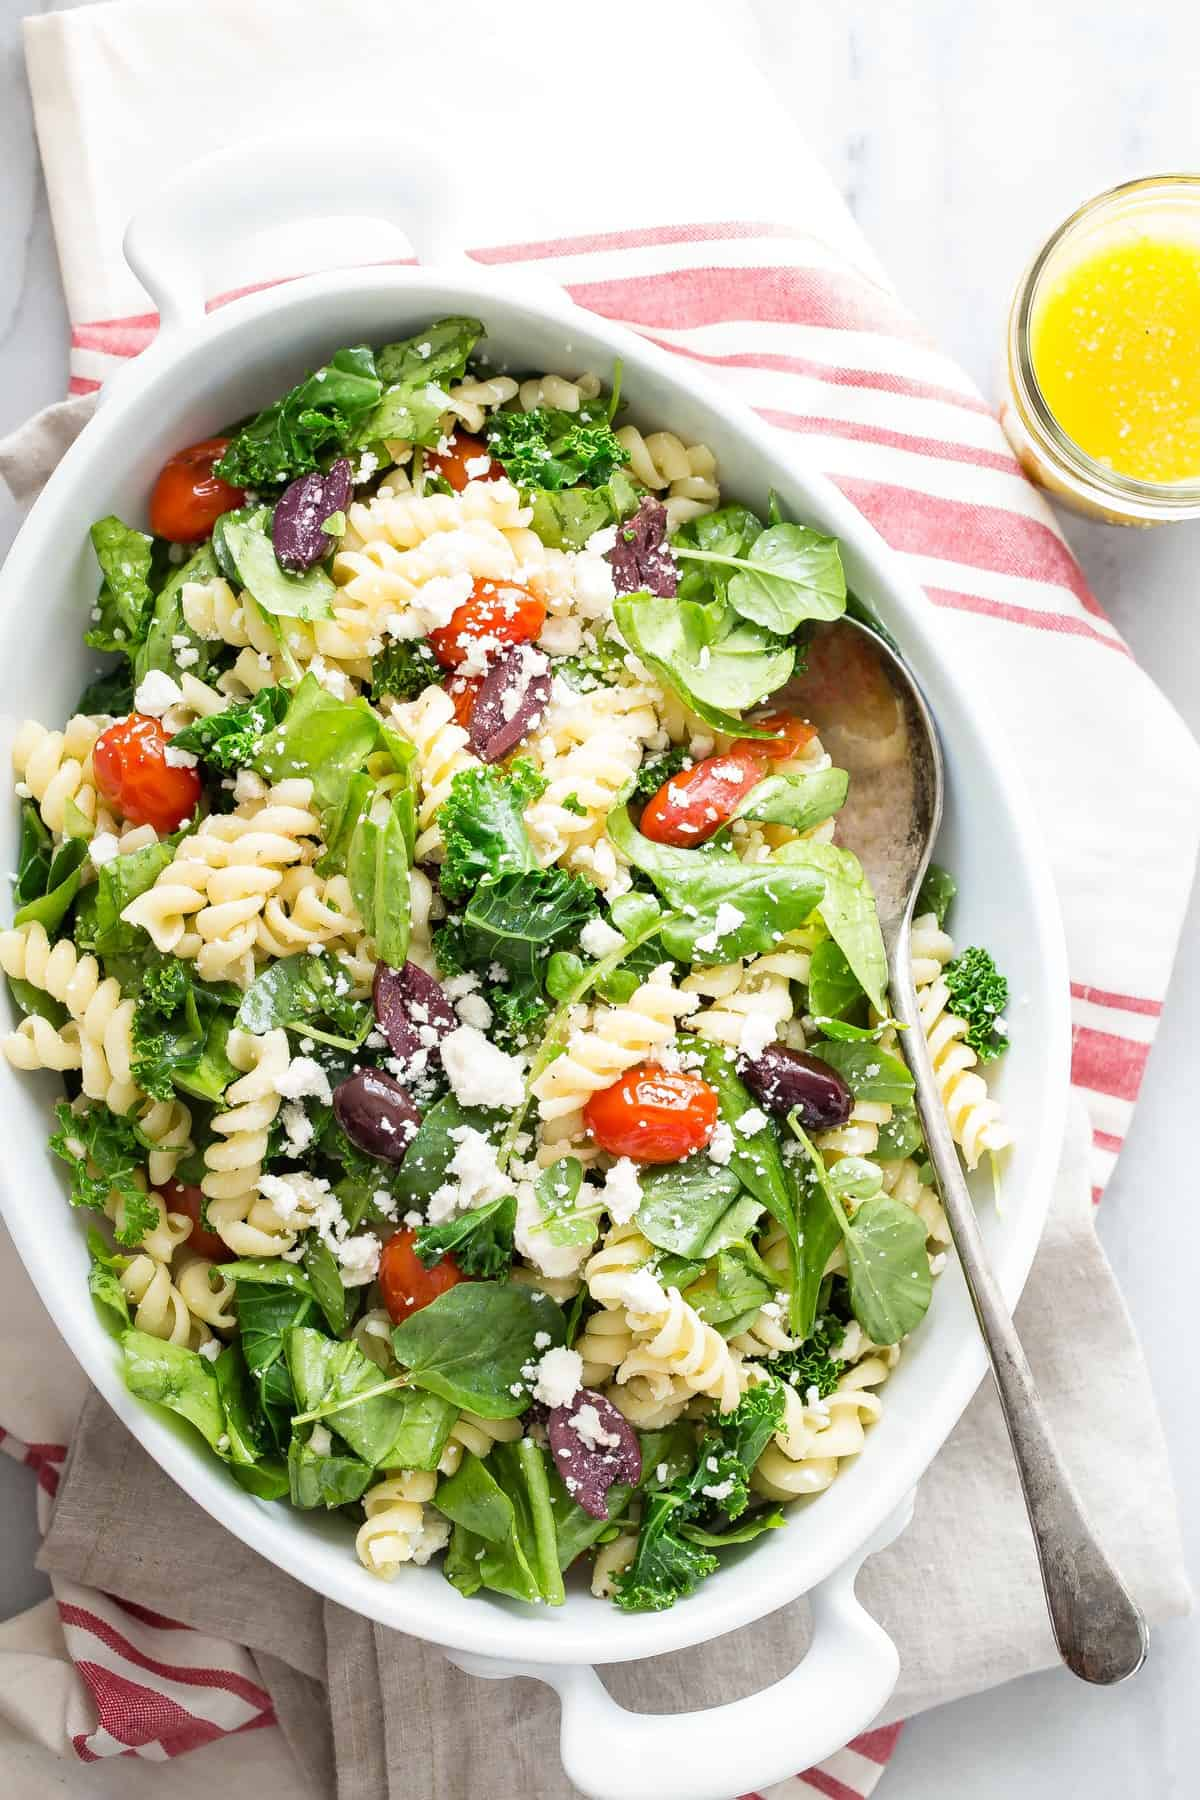 Rotini Pasta Salad with mixed greens, feta cheese, tomatoes and kalamata olives